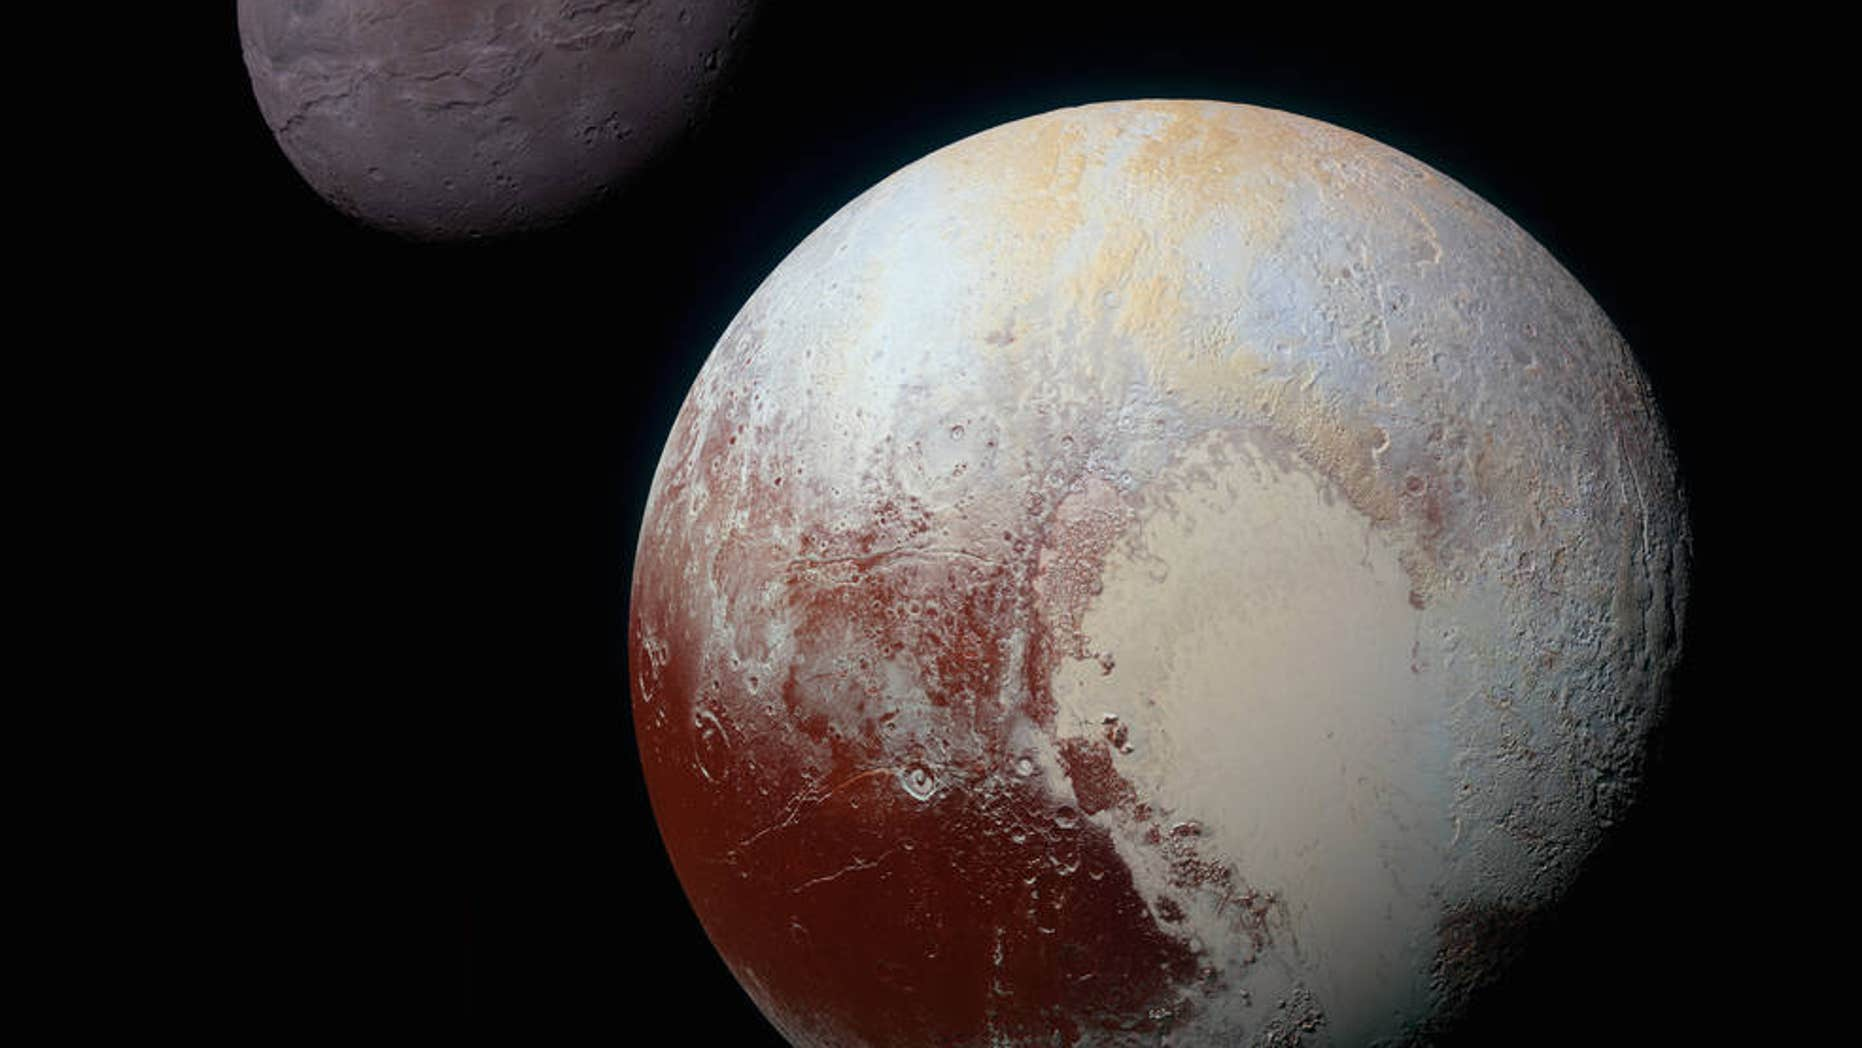 This composite, enhanced-color image of Pluto (lower right) and its largest moon, Charon (upper left), was taken by NASA's New Horizons spacecraft on July 14, 2015. Pluto and Charon are shown with approximately correct relative sizes, but their true separation is not to scale.